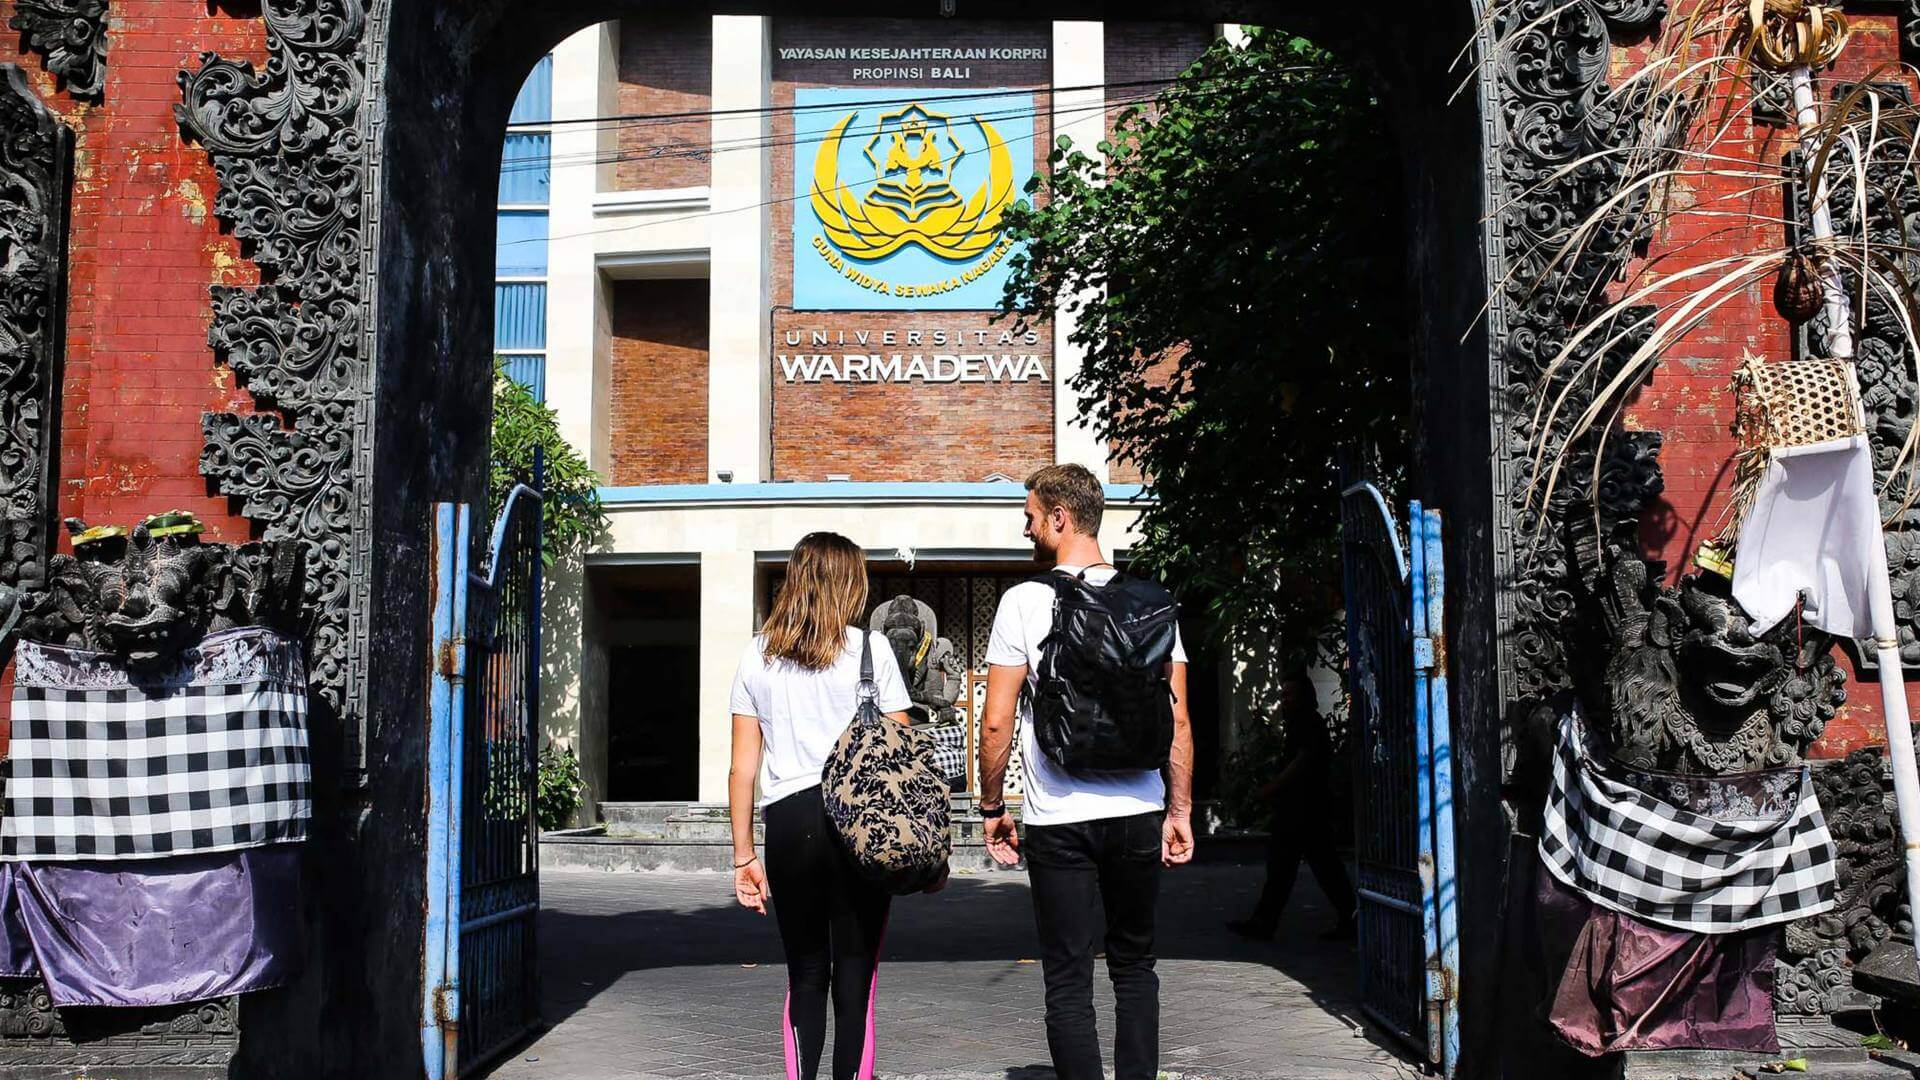 Two persons are walking through a gate with backpacks on their backs